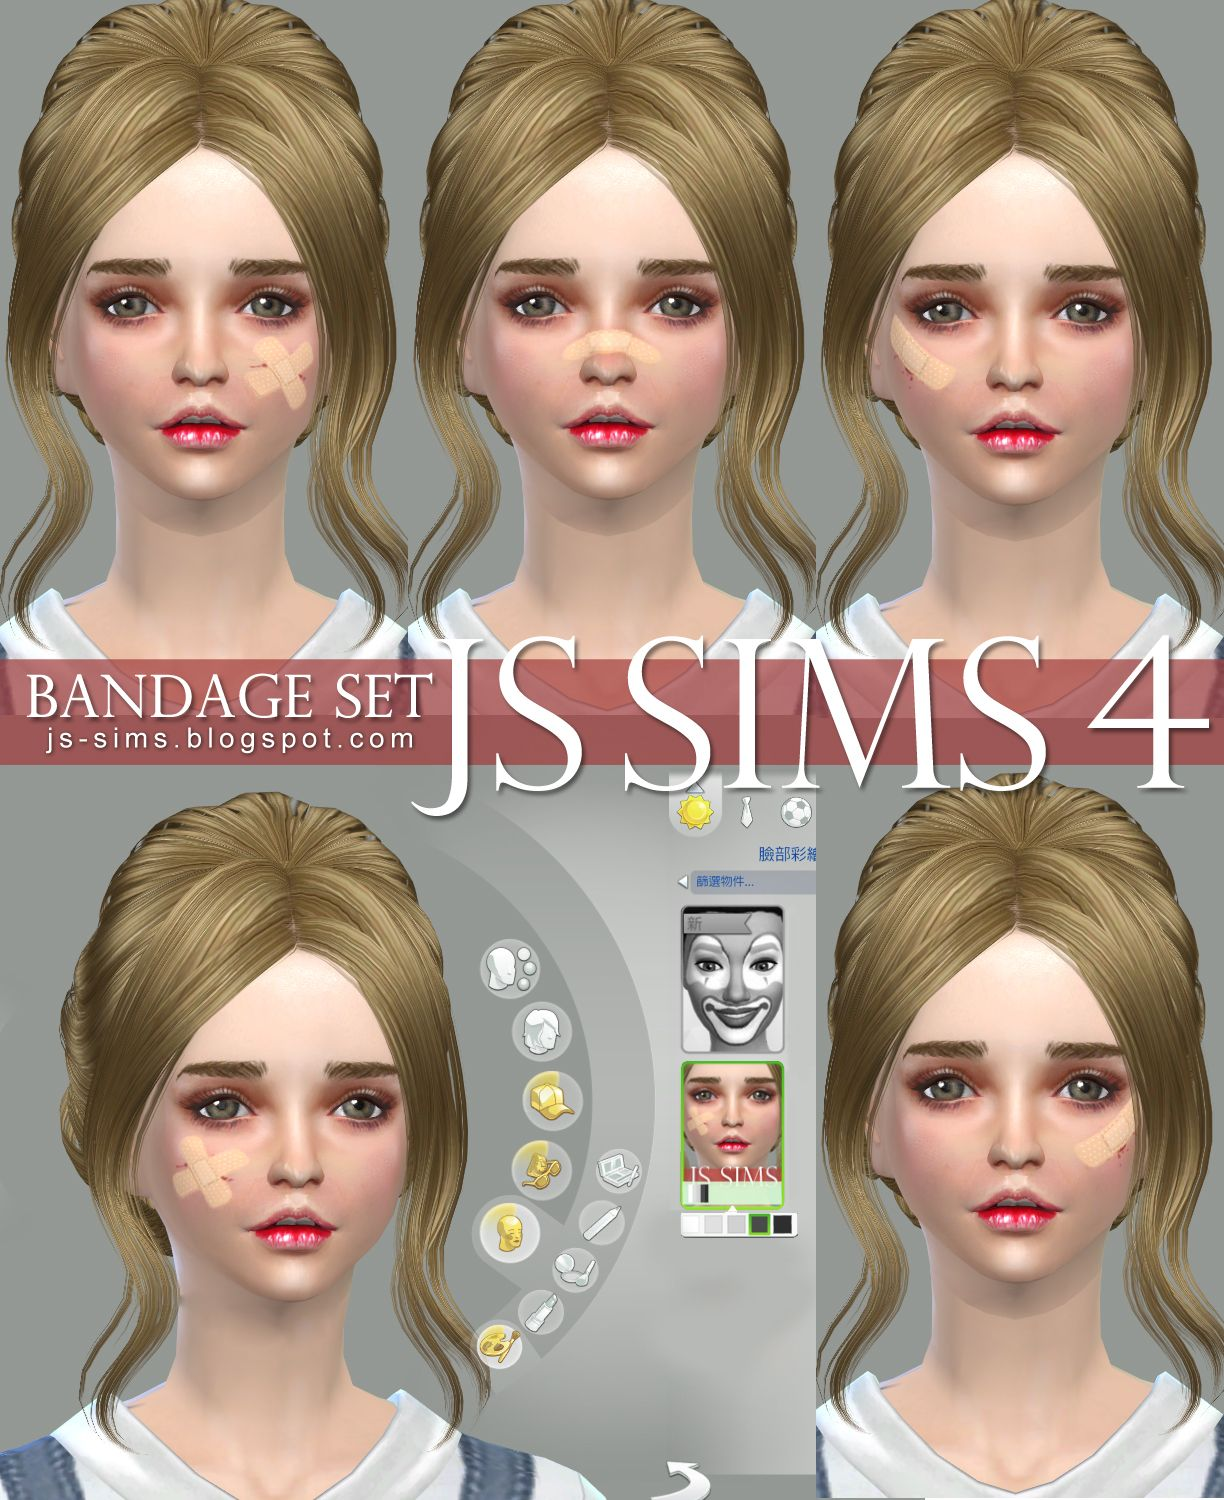 The sims 4 hair accessories - Accessories Bandage Set From Js Sims 4